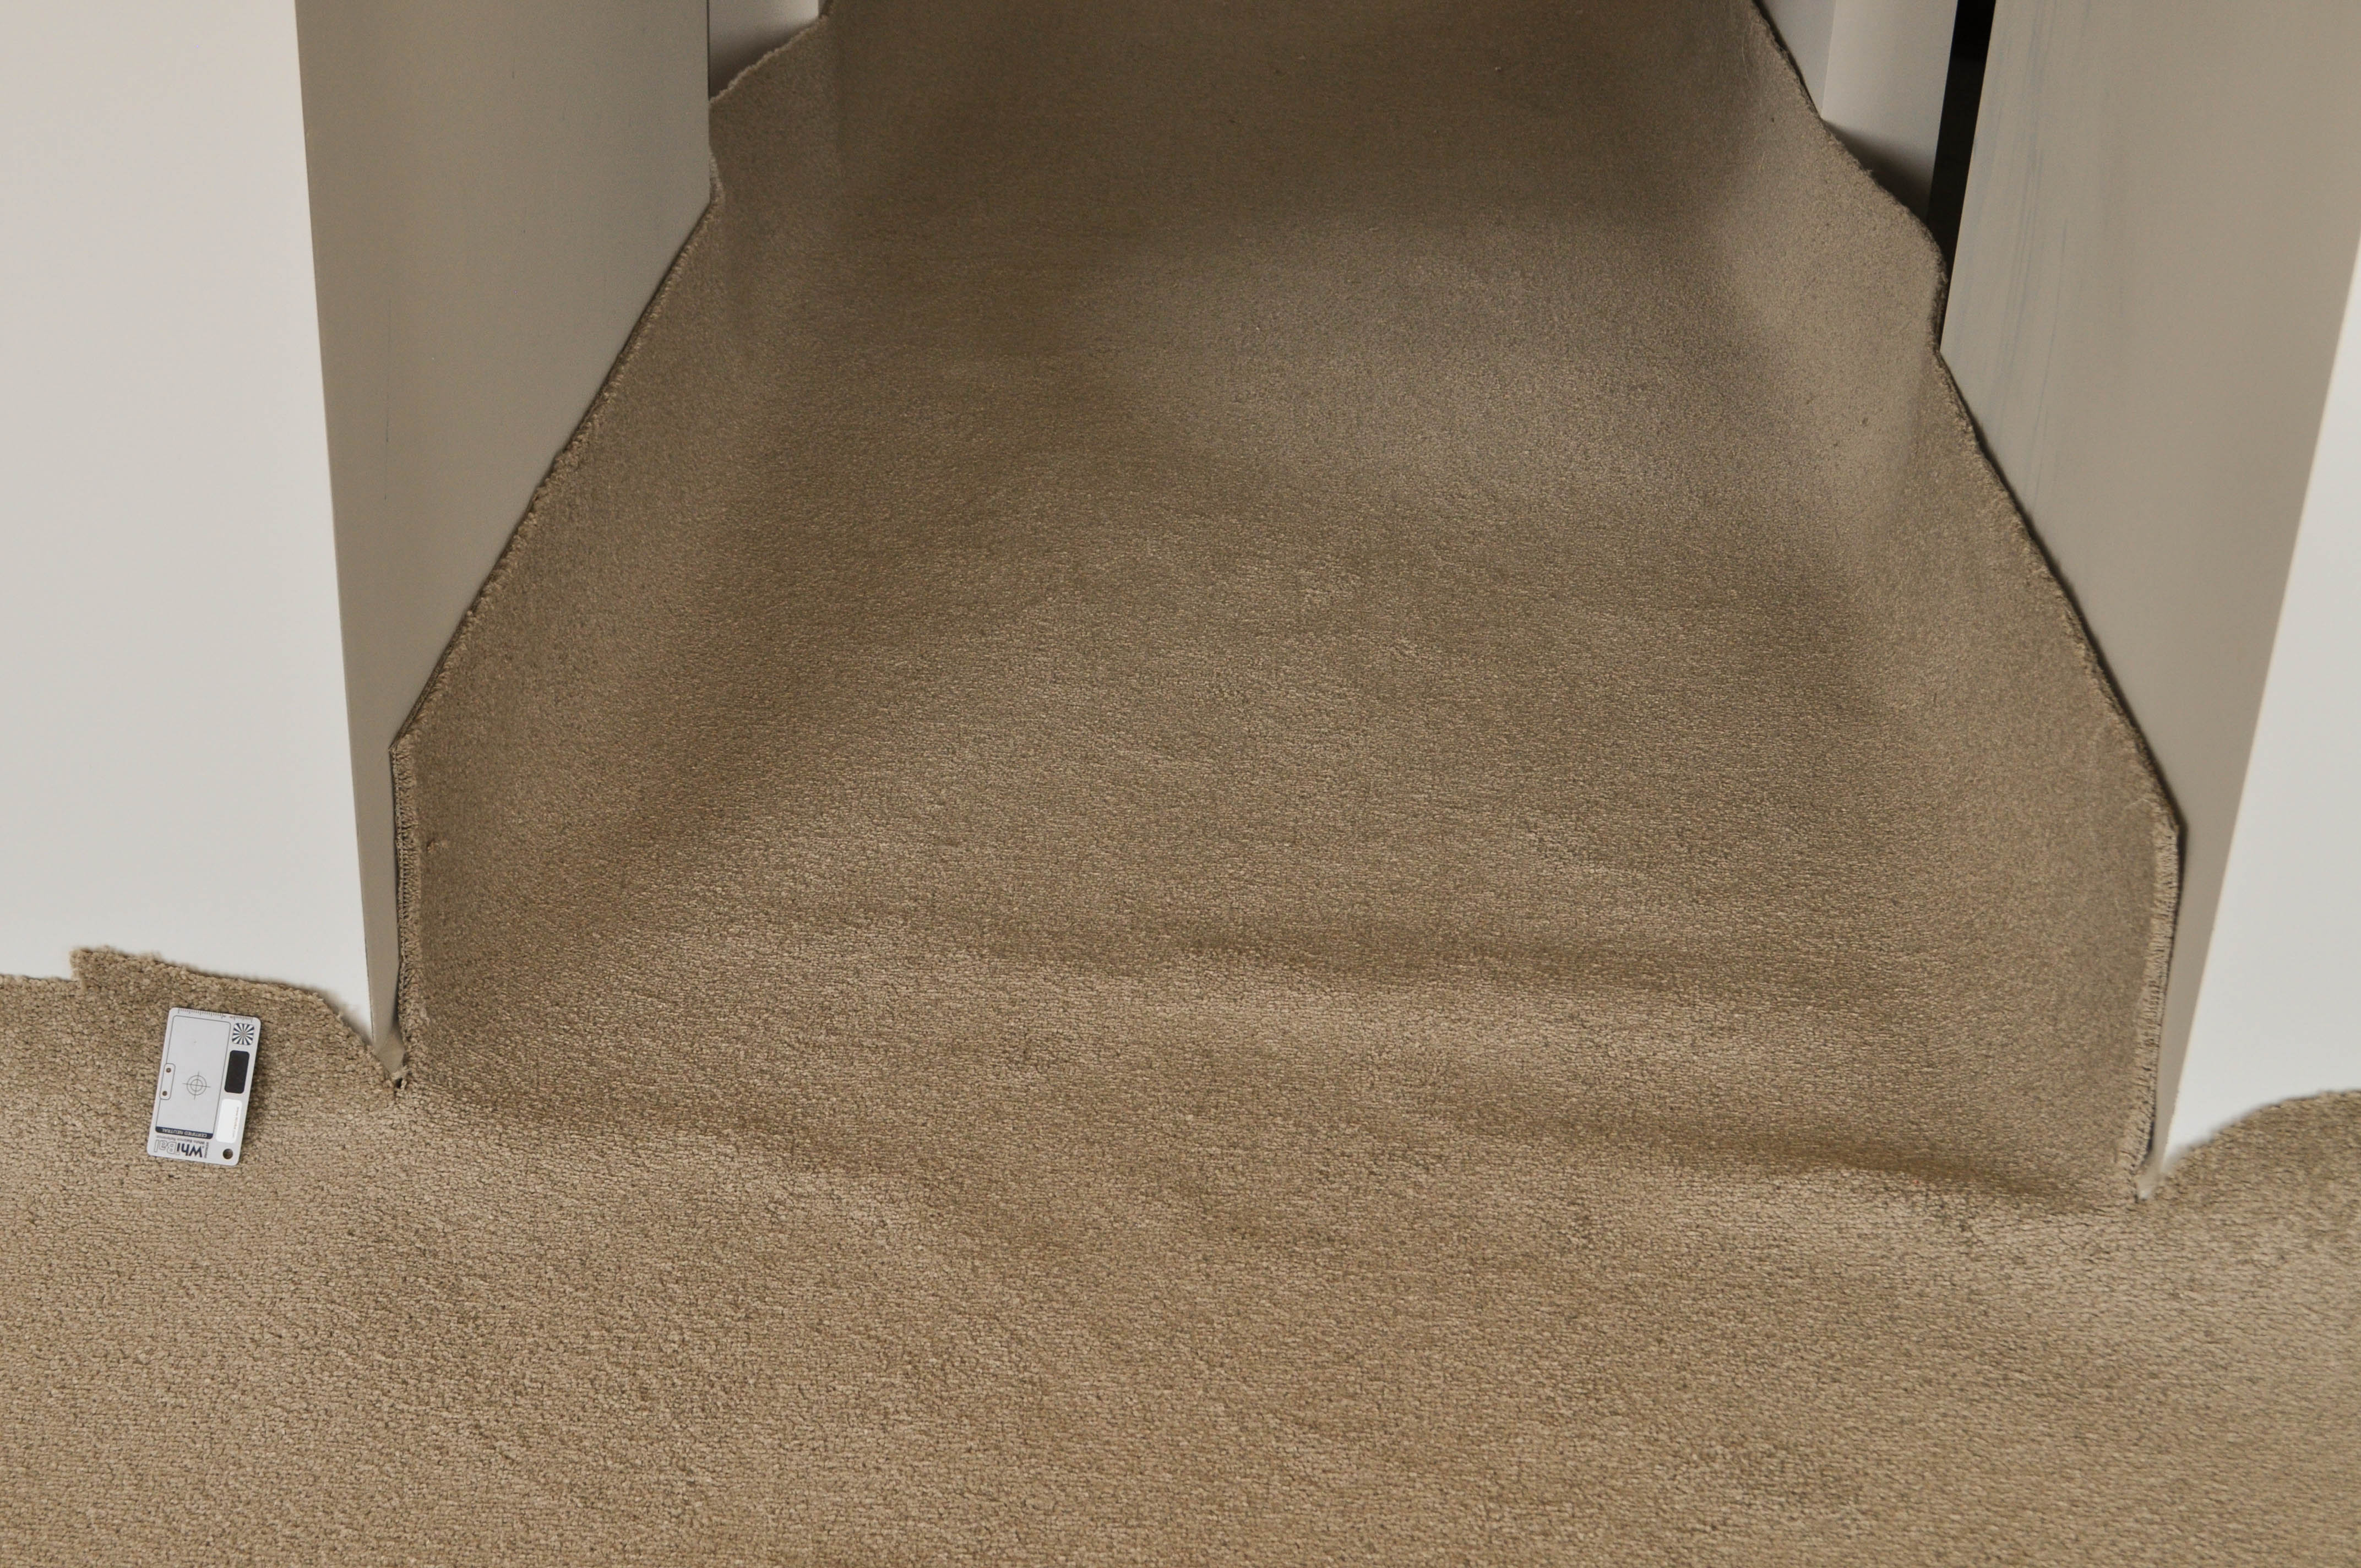 showing the floor in a lounge room and adjoining passage that has a cream colored broadloom carpet being installed on top of it.